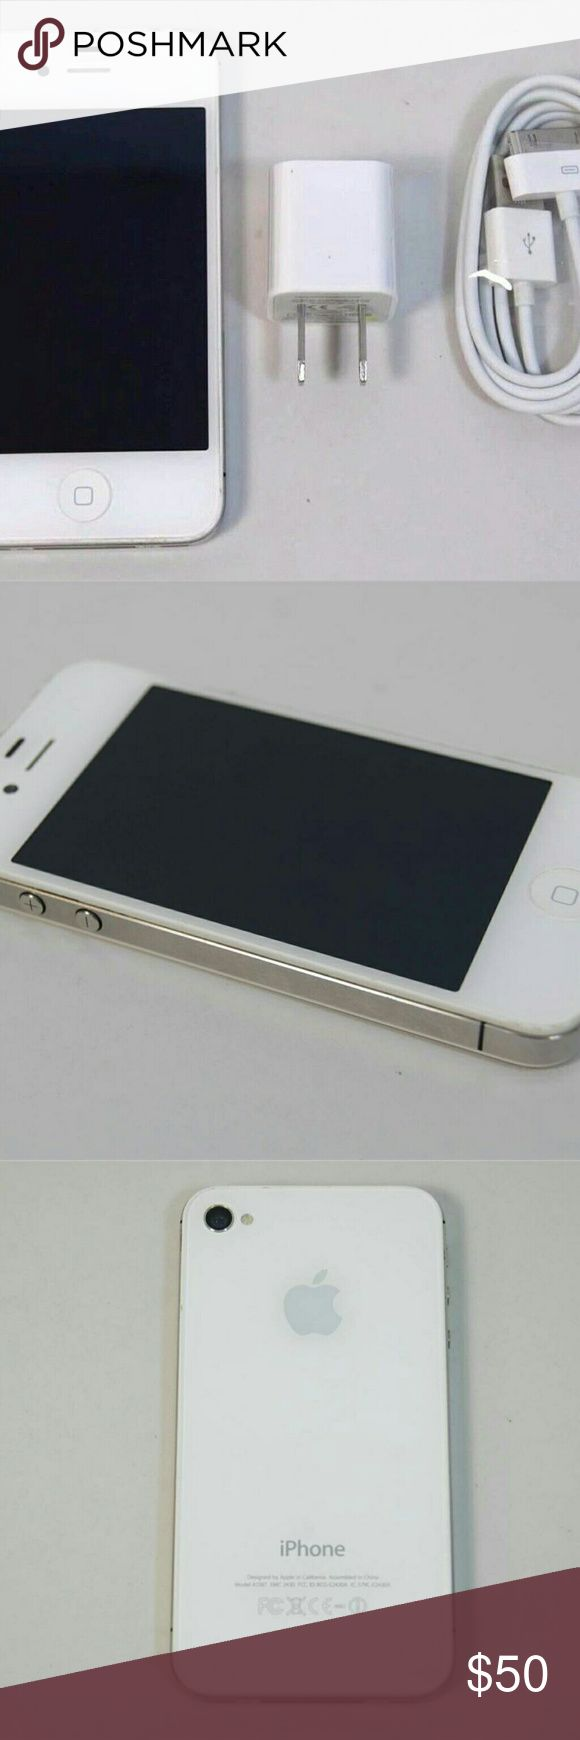 IPHONE 5S 8GB (SPRINT) Fore sale is an iphone 5s 8GB in good condition. The phone  is locked to Sprint network, it works great and has a clean ESN. Other